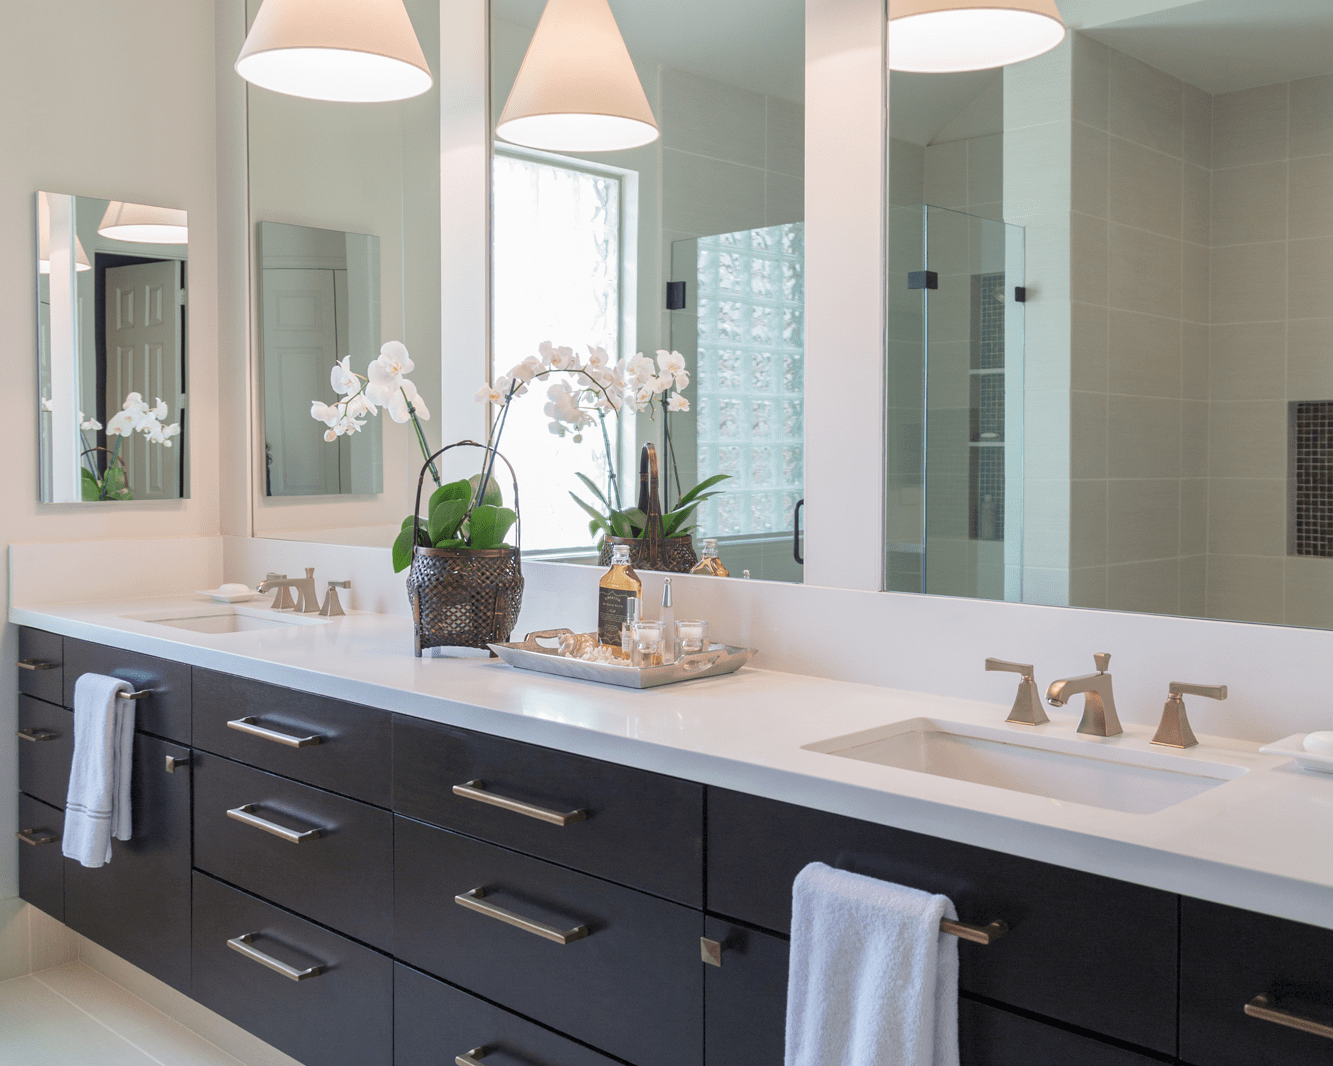 Before After A Master Bathroom Remodel Surprises Everyone With Unexpected Results Designed